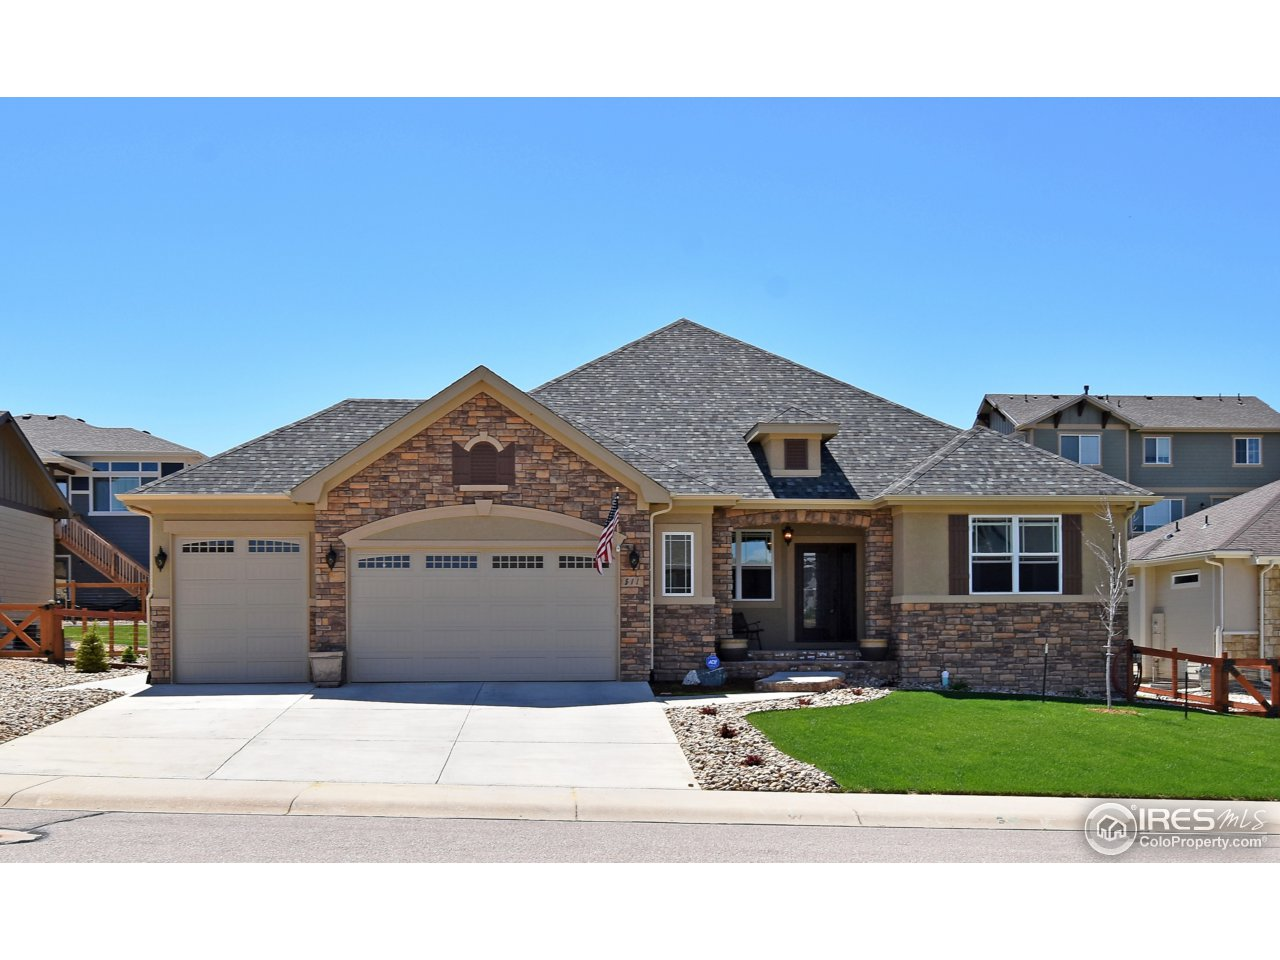 Immaculate custom built home with 4 bedrooms, 4 bath in Poudre River Ranch. Open floor plan boasts beautiful hardwood floors, gorgeous stone living room fireplace & many more luxurious finishes throughout. Formal dining area, eat-in kitchen w/ walk-in pantry & all SS appliances. Master bd w/walk in closet & stunning 5 piece master bath. Basement is ready to finish, a bathroom has already been completed. 3 car garage, fully finished landscaped yard & covered back patio. Windsor school district.